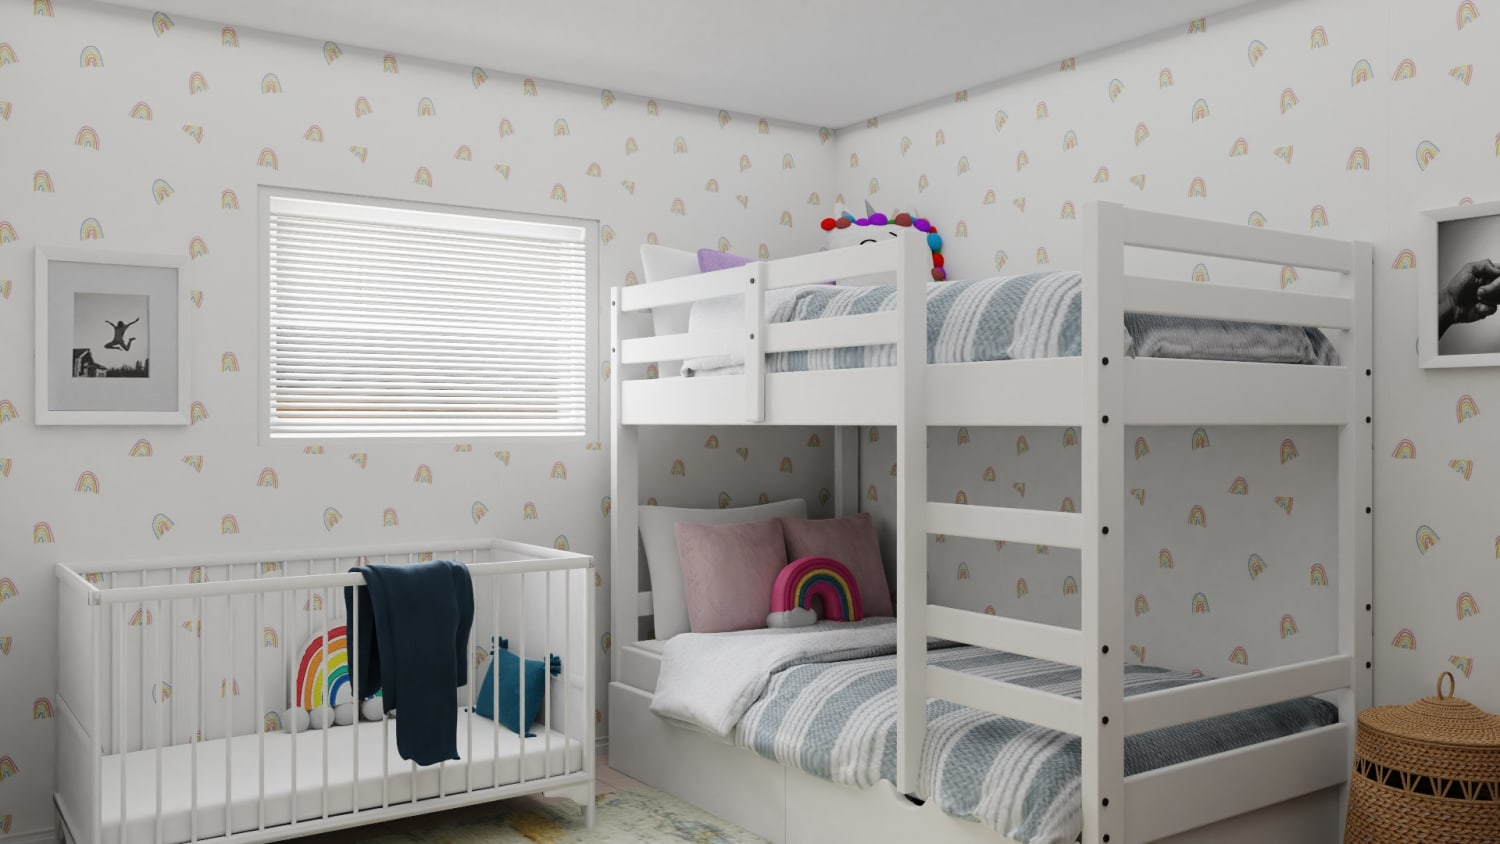 A Transitional Modern Kids Bedroom Designed to Ignite Creativity Design By Spacejoy